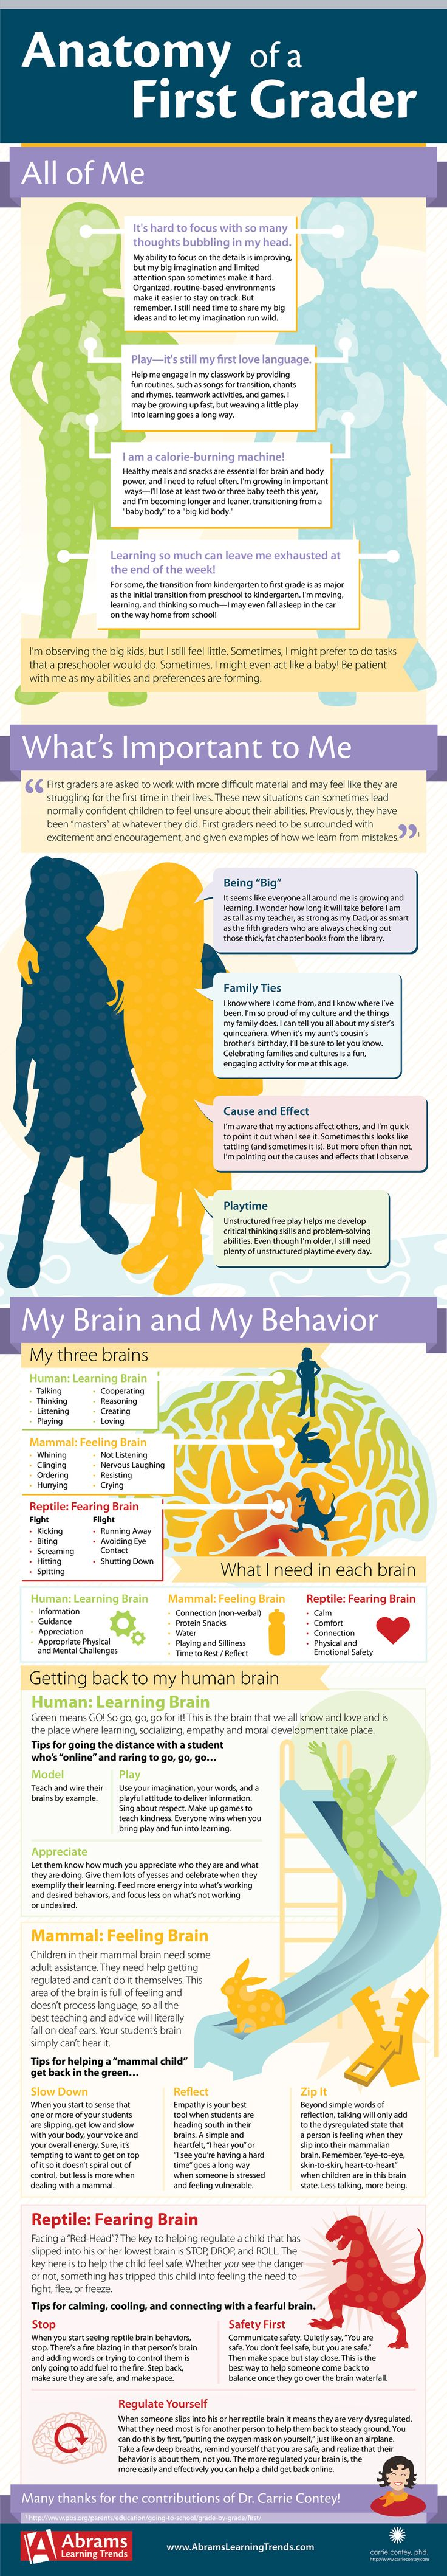 The Anatomy of a First Grader | Abrams Learning Trends